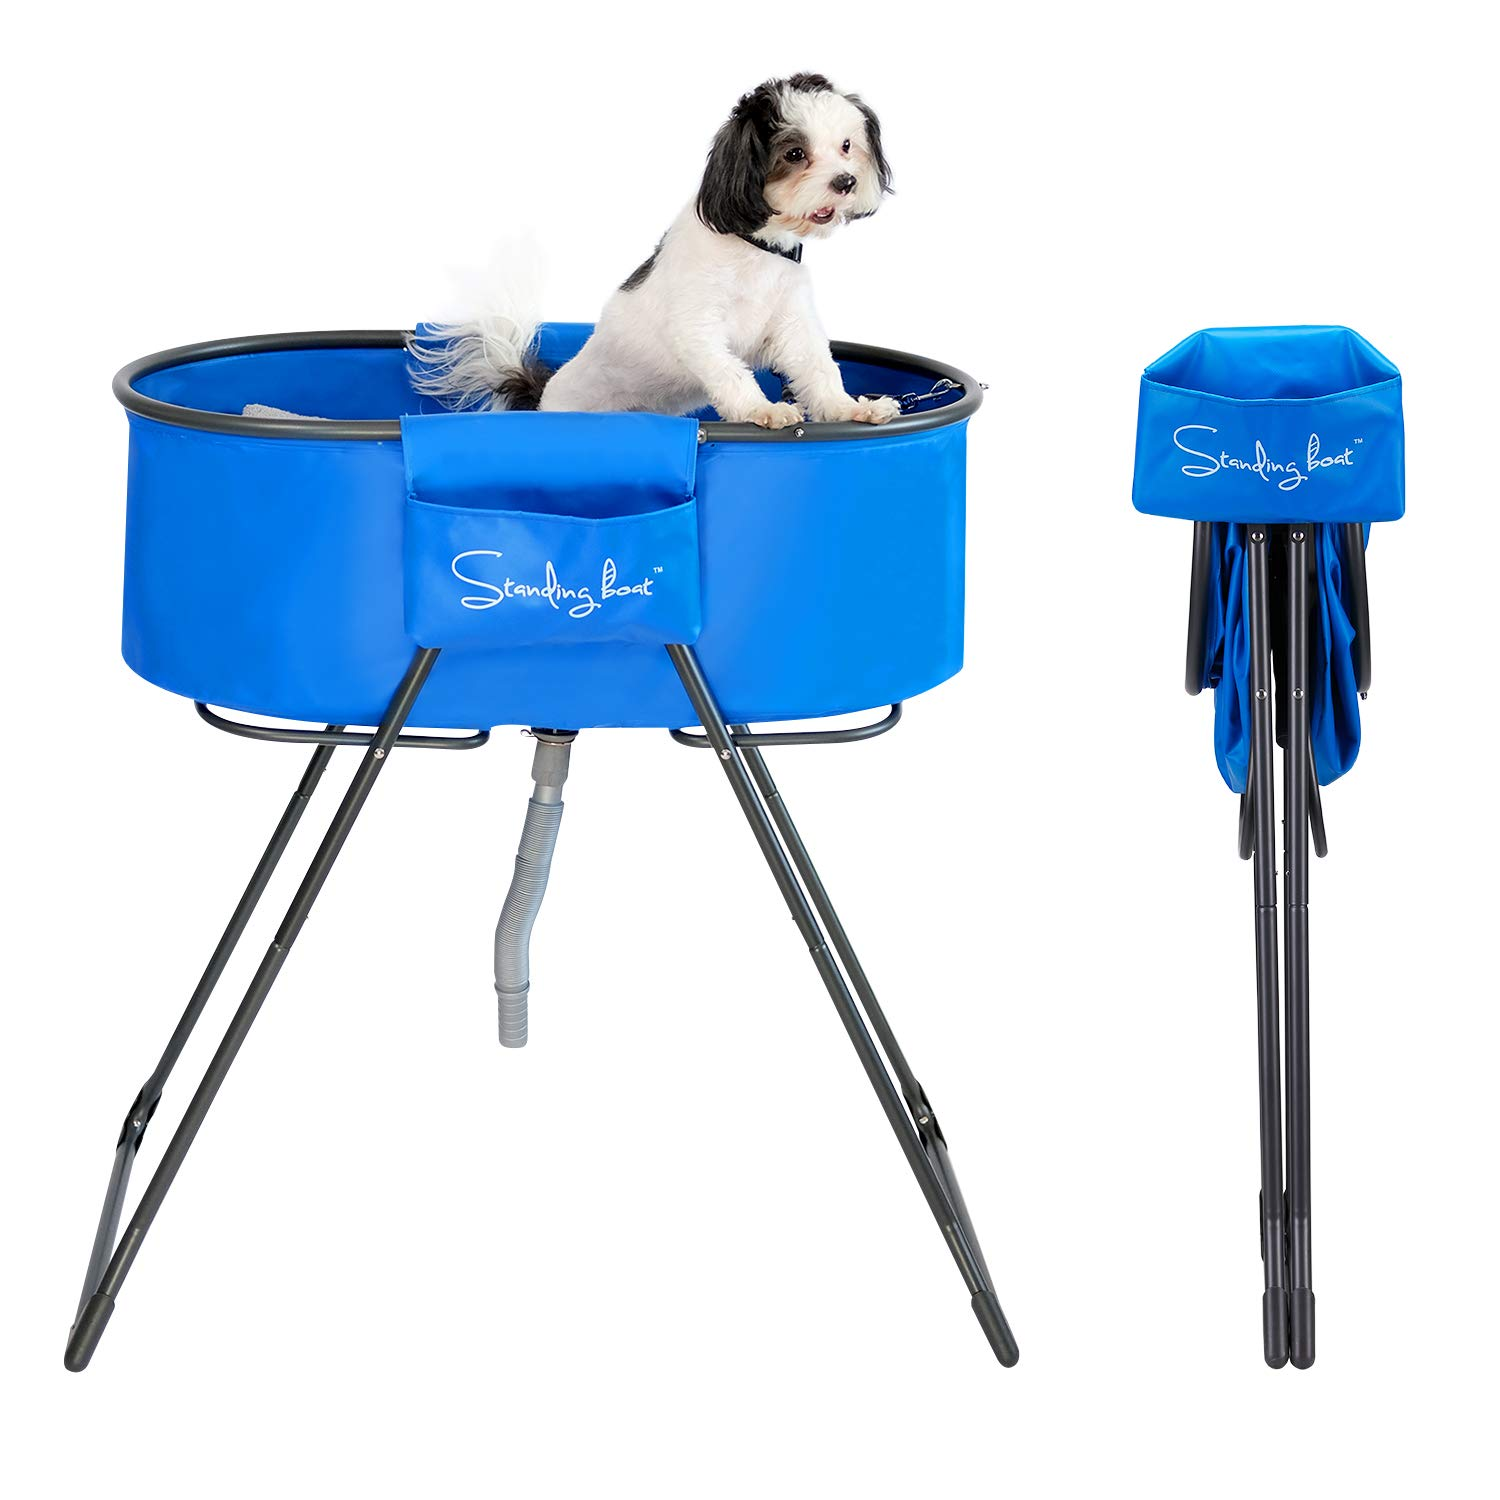 Standing Boat Elevated Folding Pet Bath Tub and Wash Station for Bathing, Shower, and Grooming, Foldable and Portable, Indoor and Outdoor, Perfect for Small and Medium Size Dogs, Cats and Other Pet